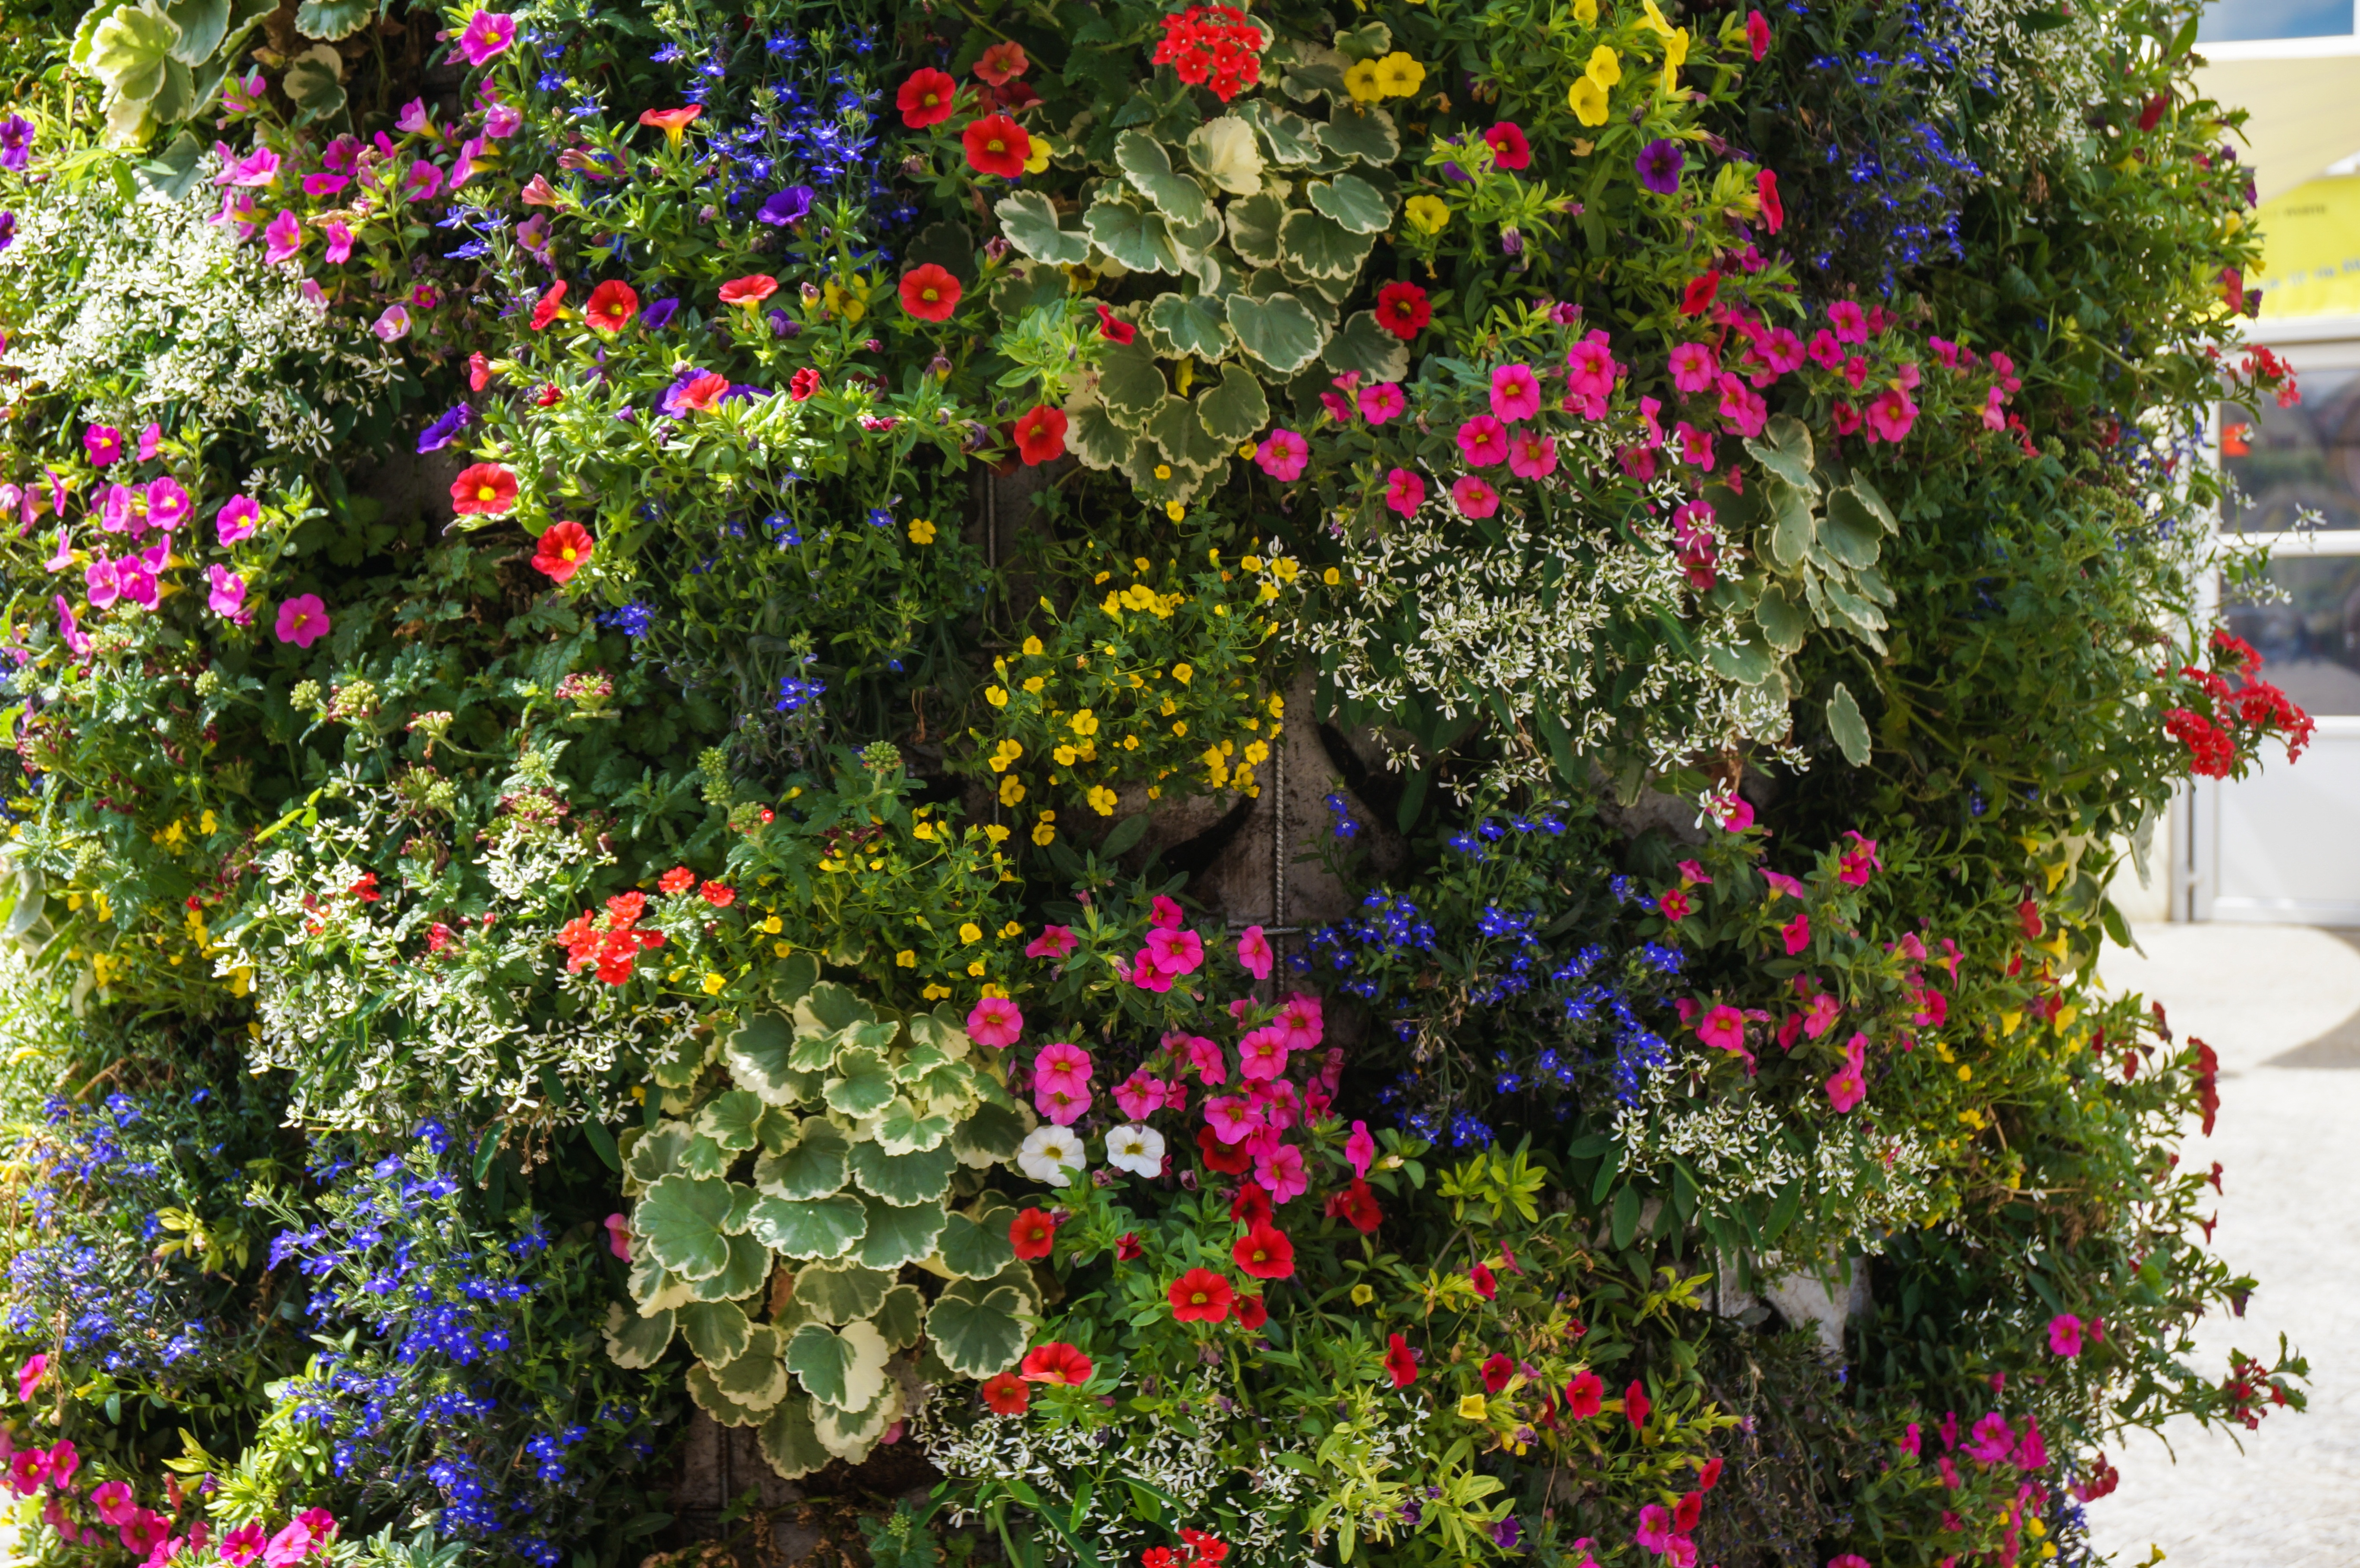 Colorful Flowers Wall Free Image